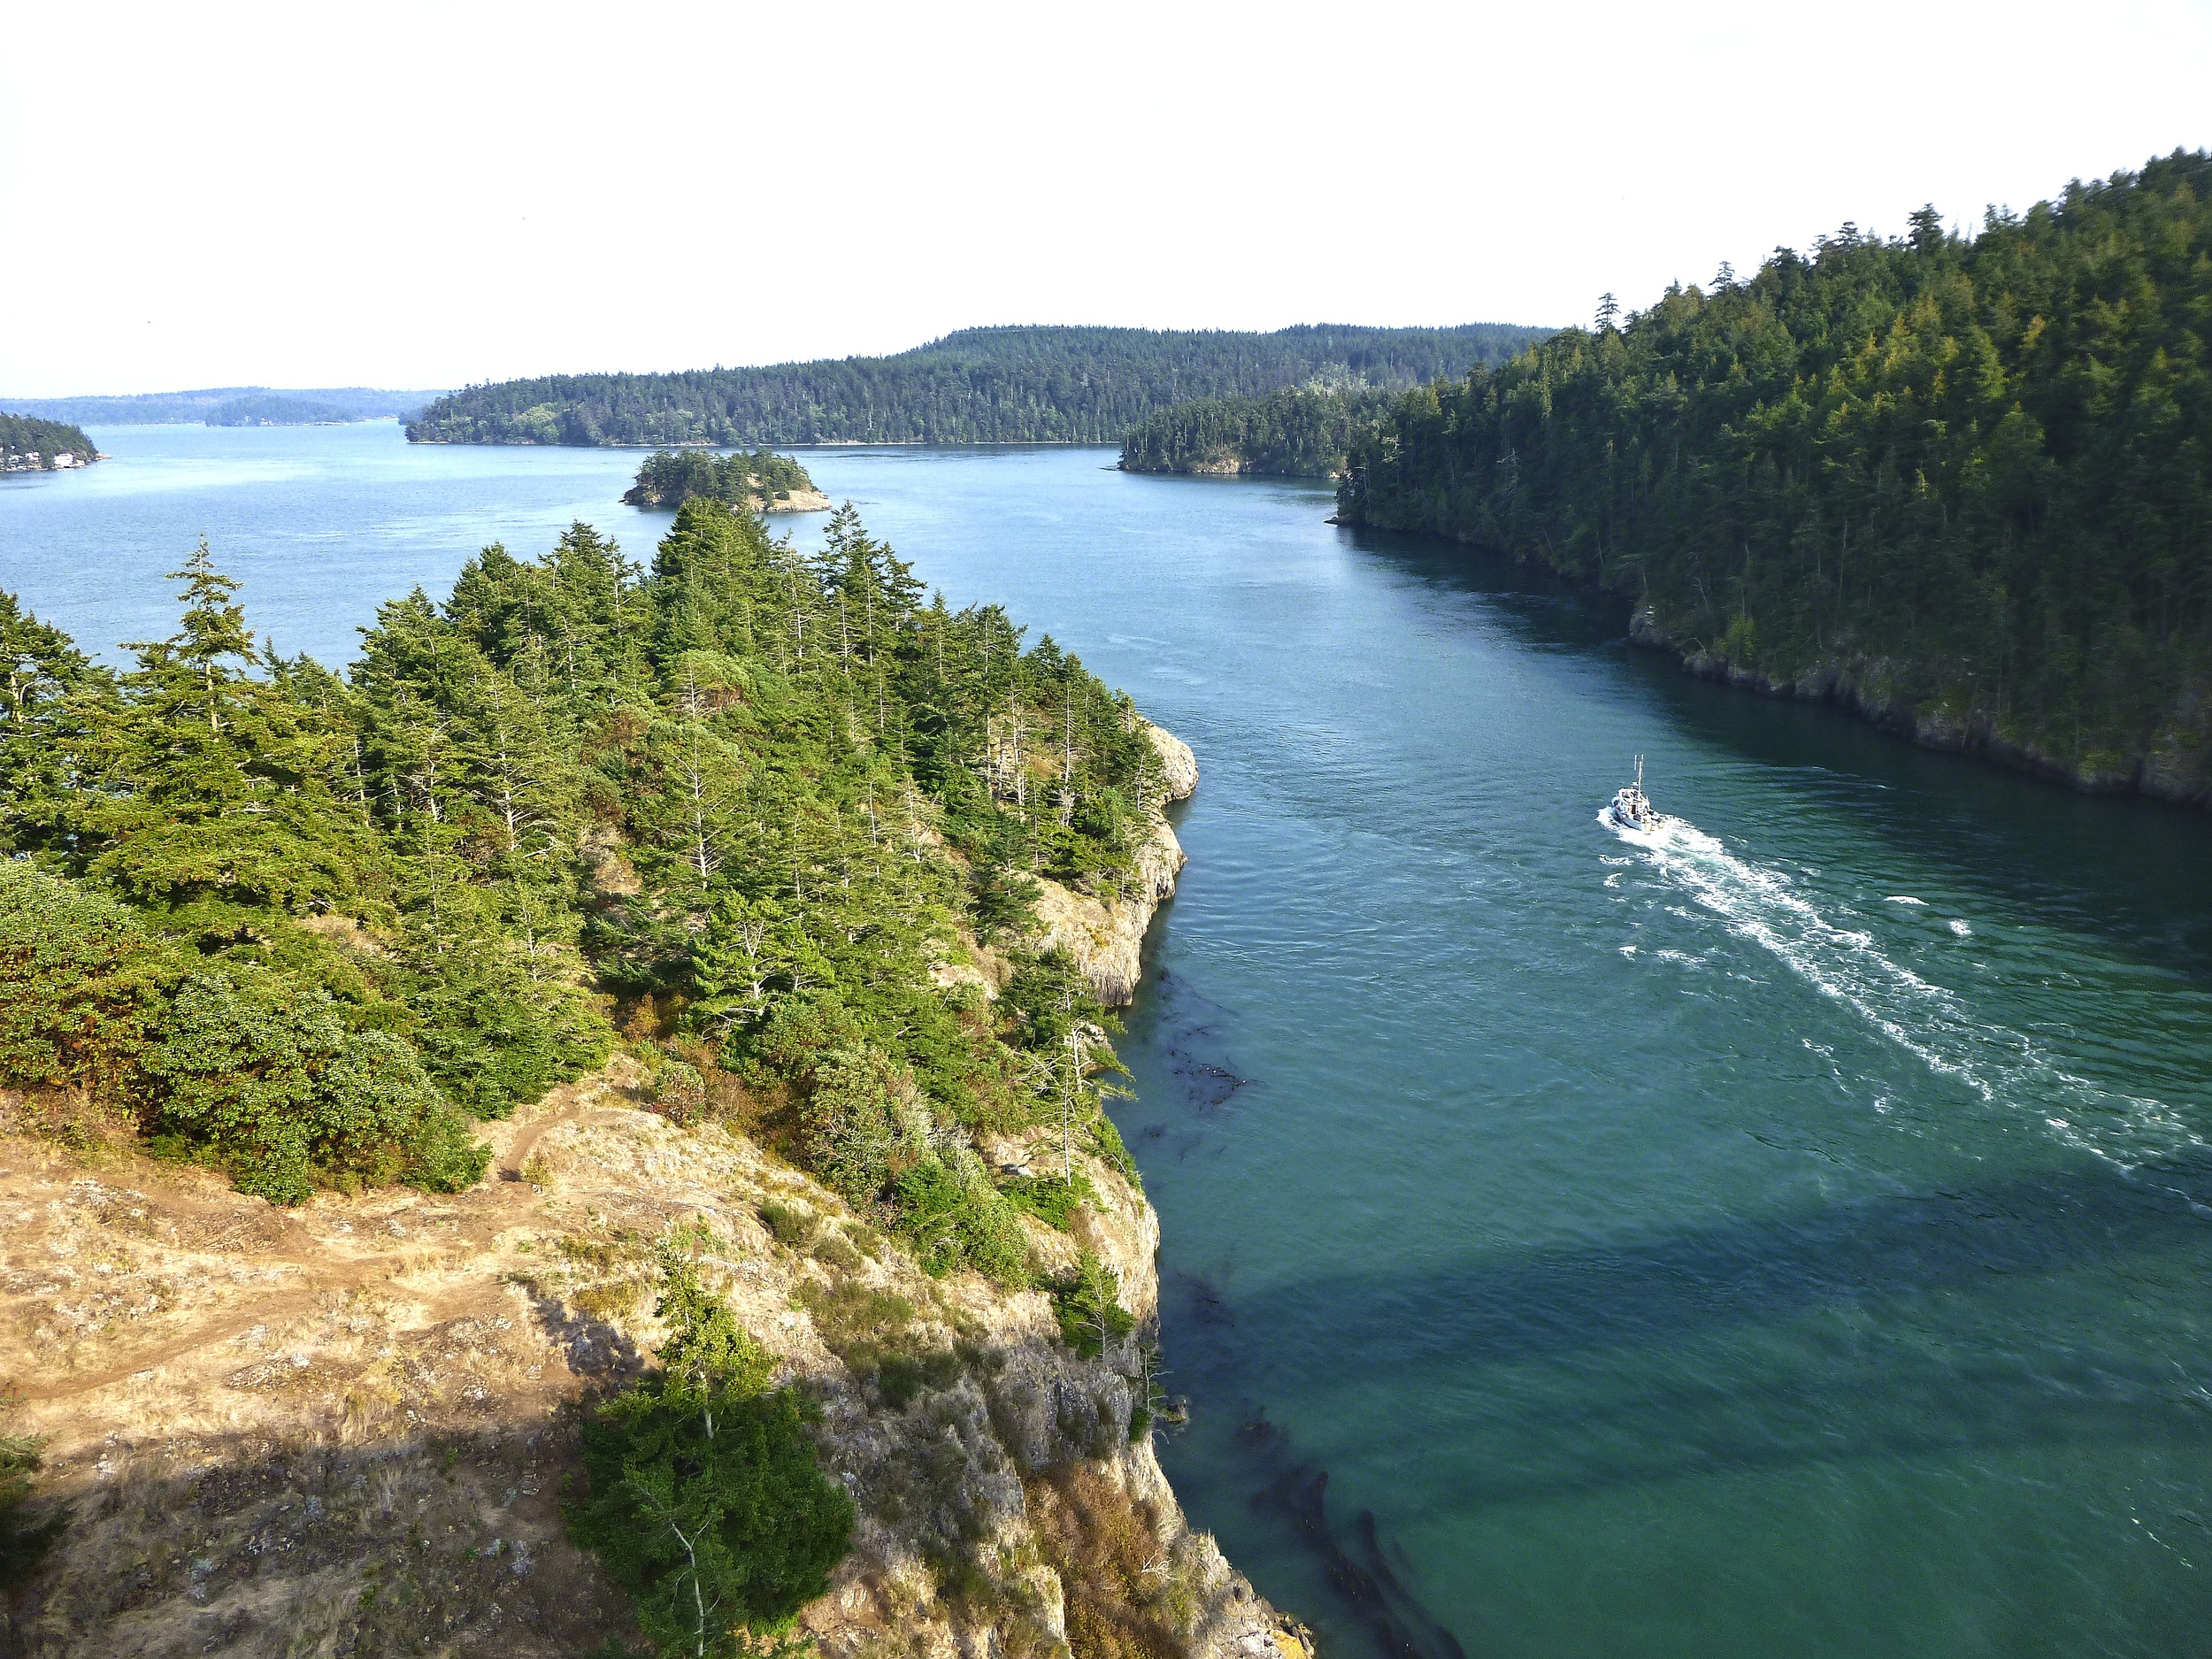 Deception Pass, Whidbey Island Washington. So called because the original explorers thought Whidbey was part of the mainland until they came across a deep gorge with the Pacific Ocean passing through!